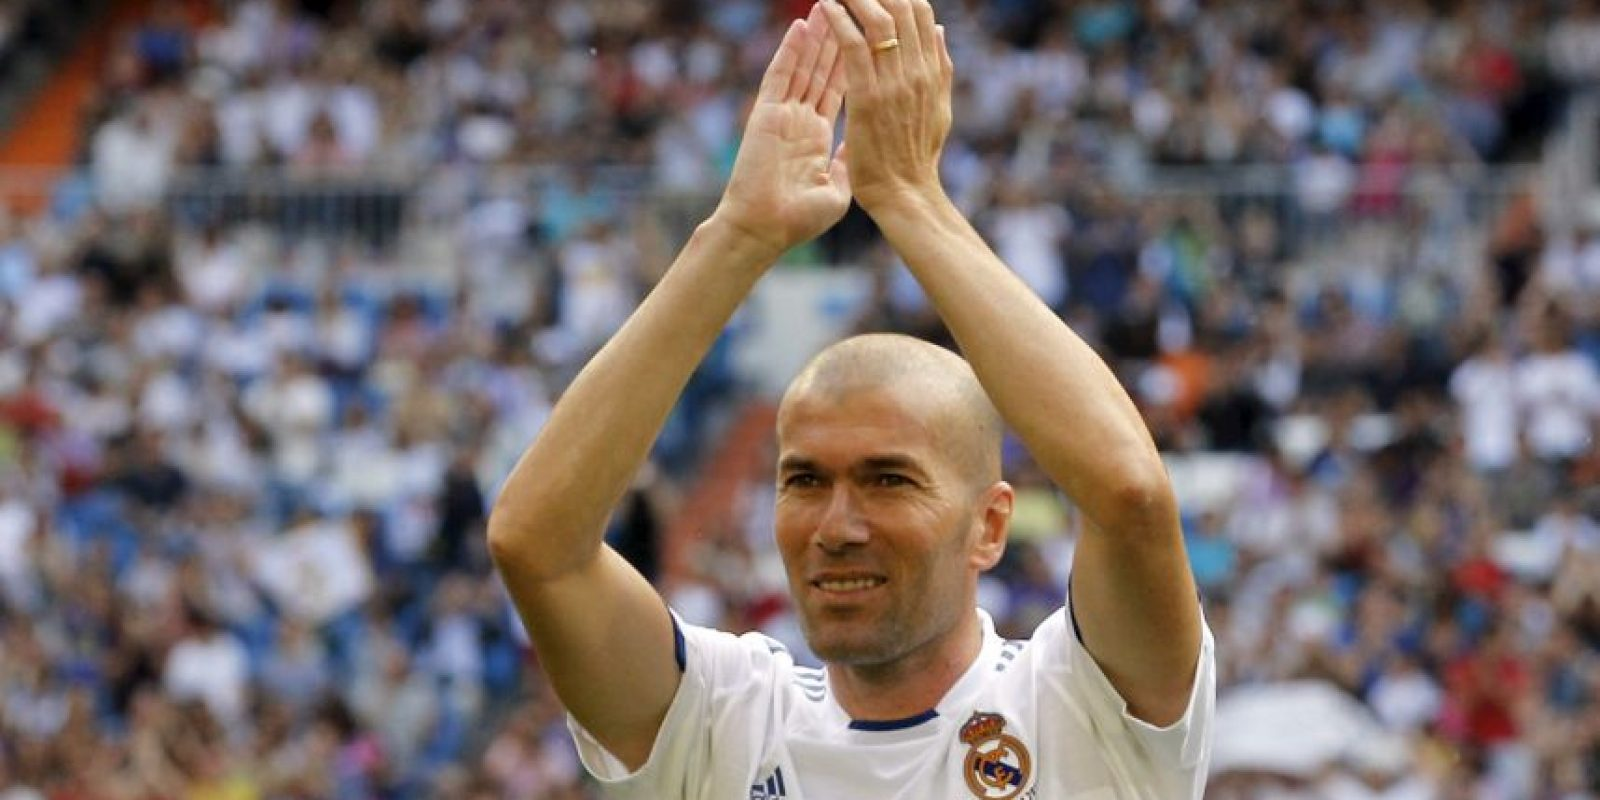 6. Zinedine Zidane Foto: Getty Images